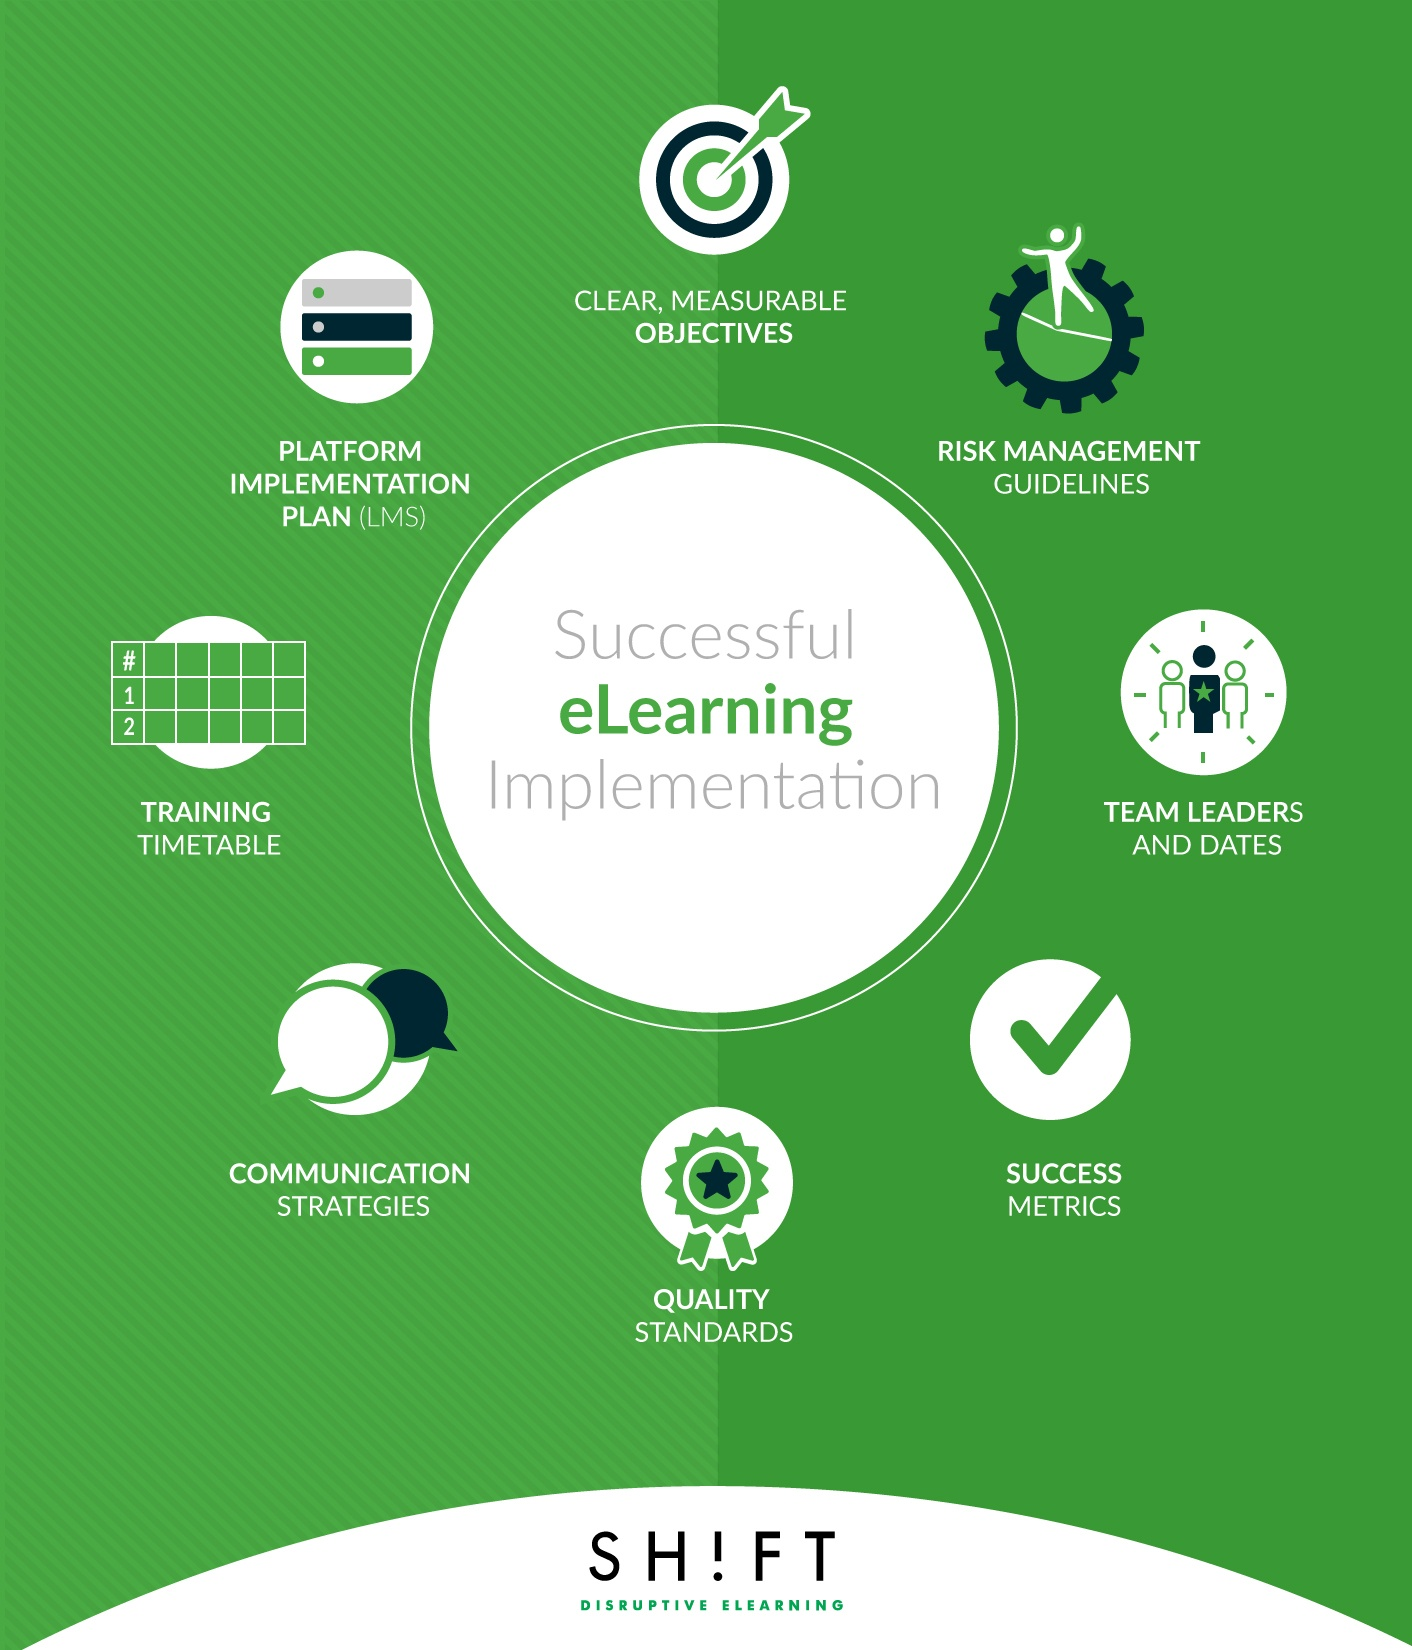 7 factors for ensuring a successful elearning implementation